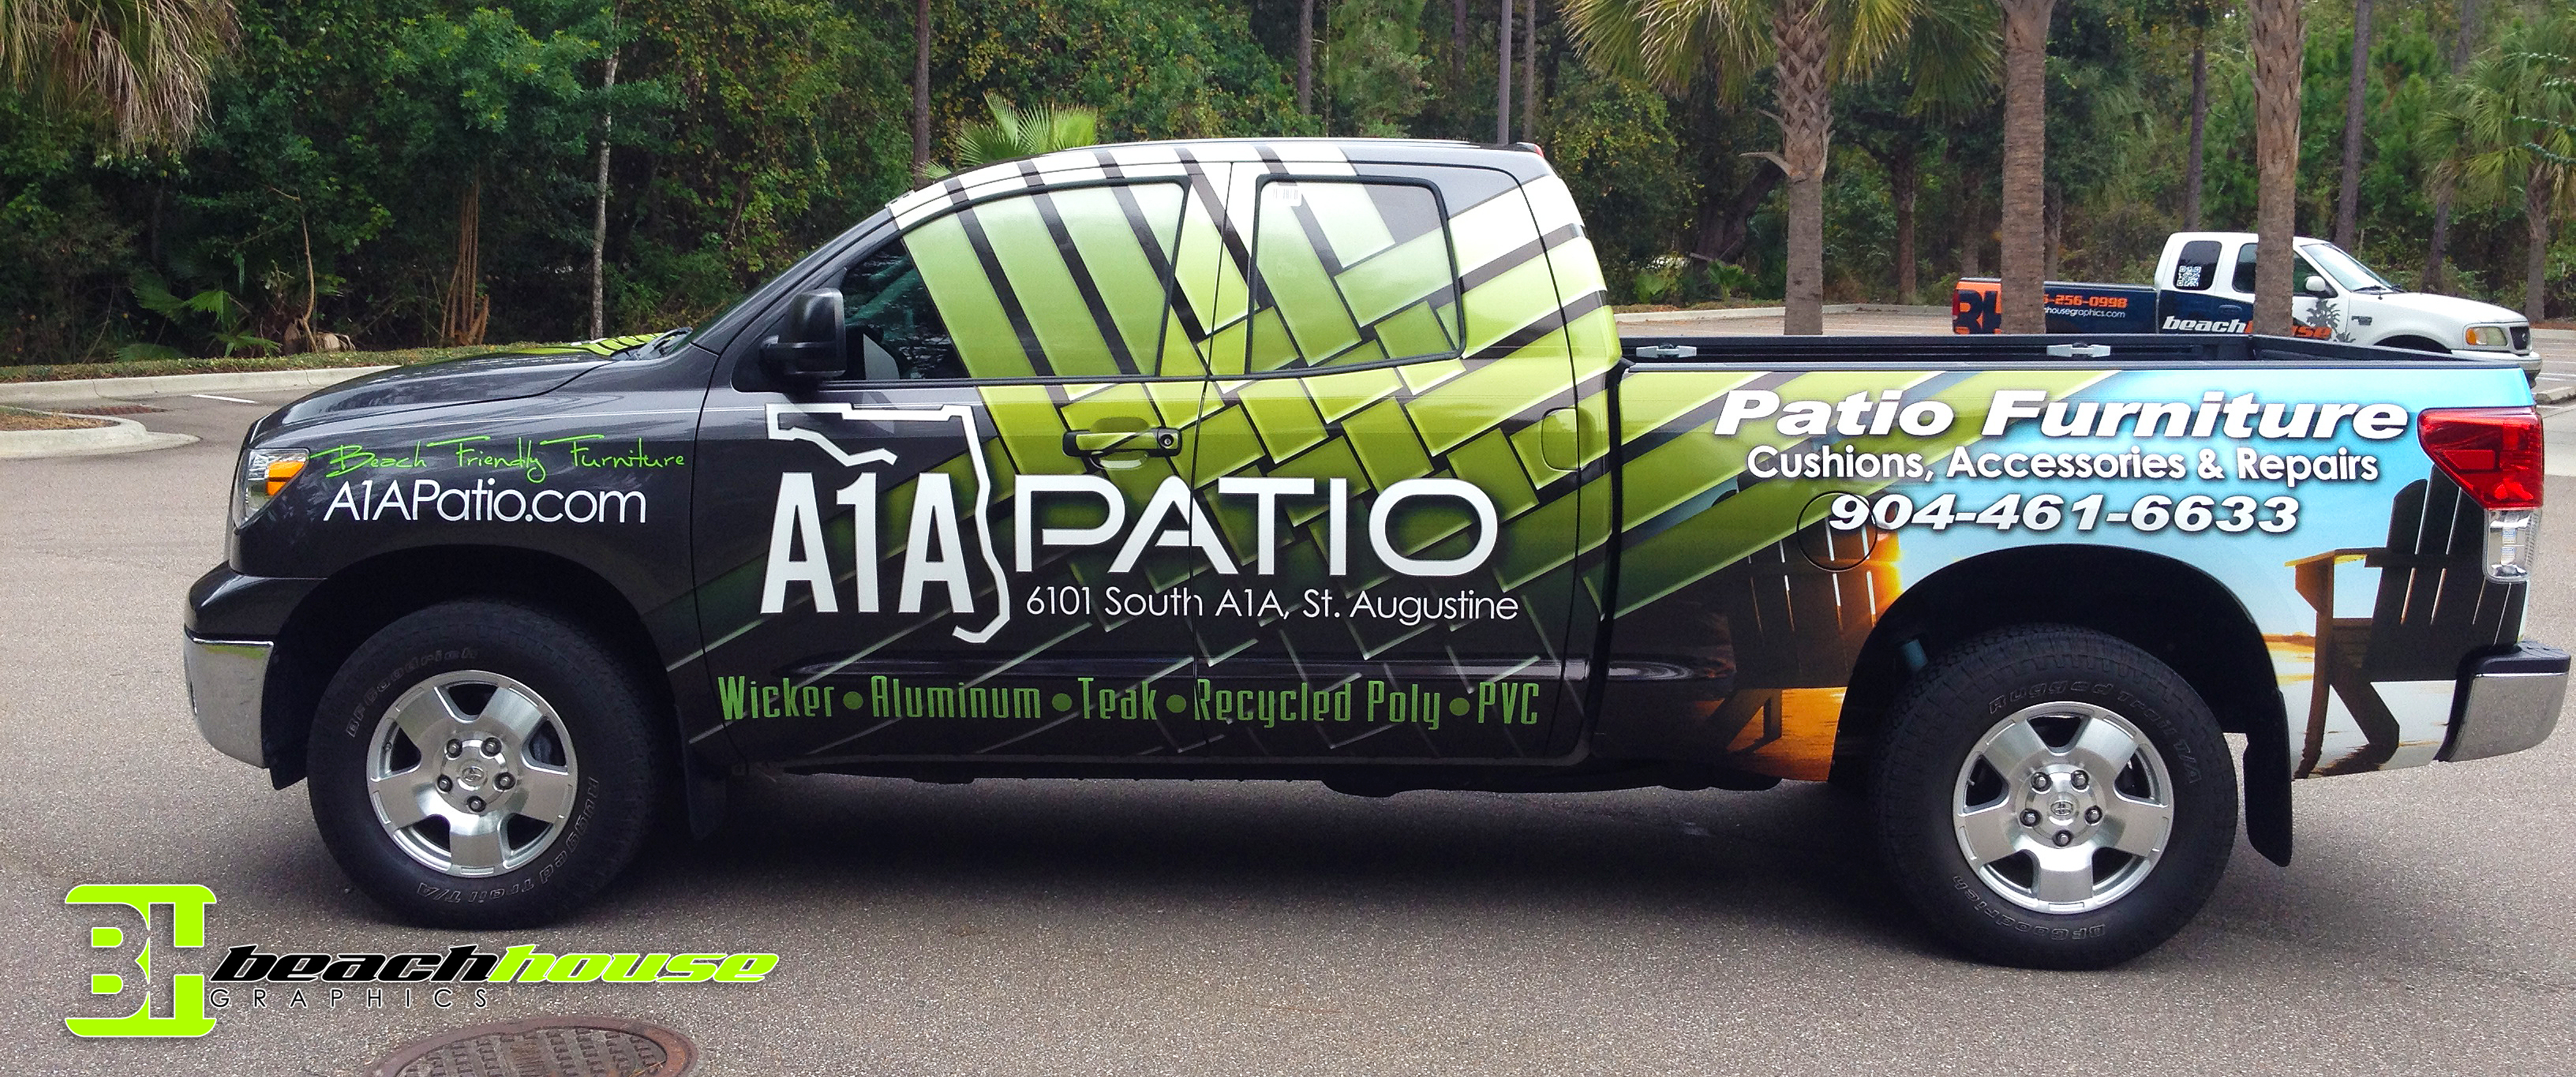 A1a Patio Latest Truck Wrap Custom Vehicle Wraps